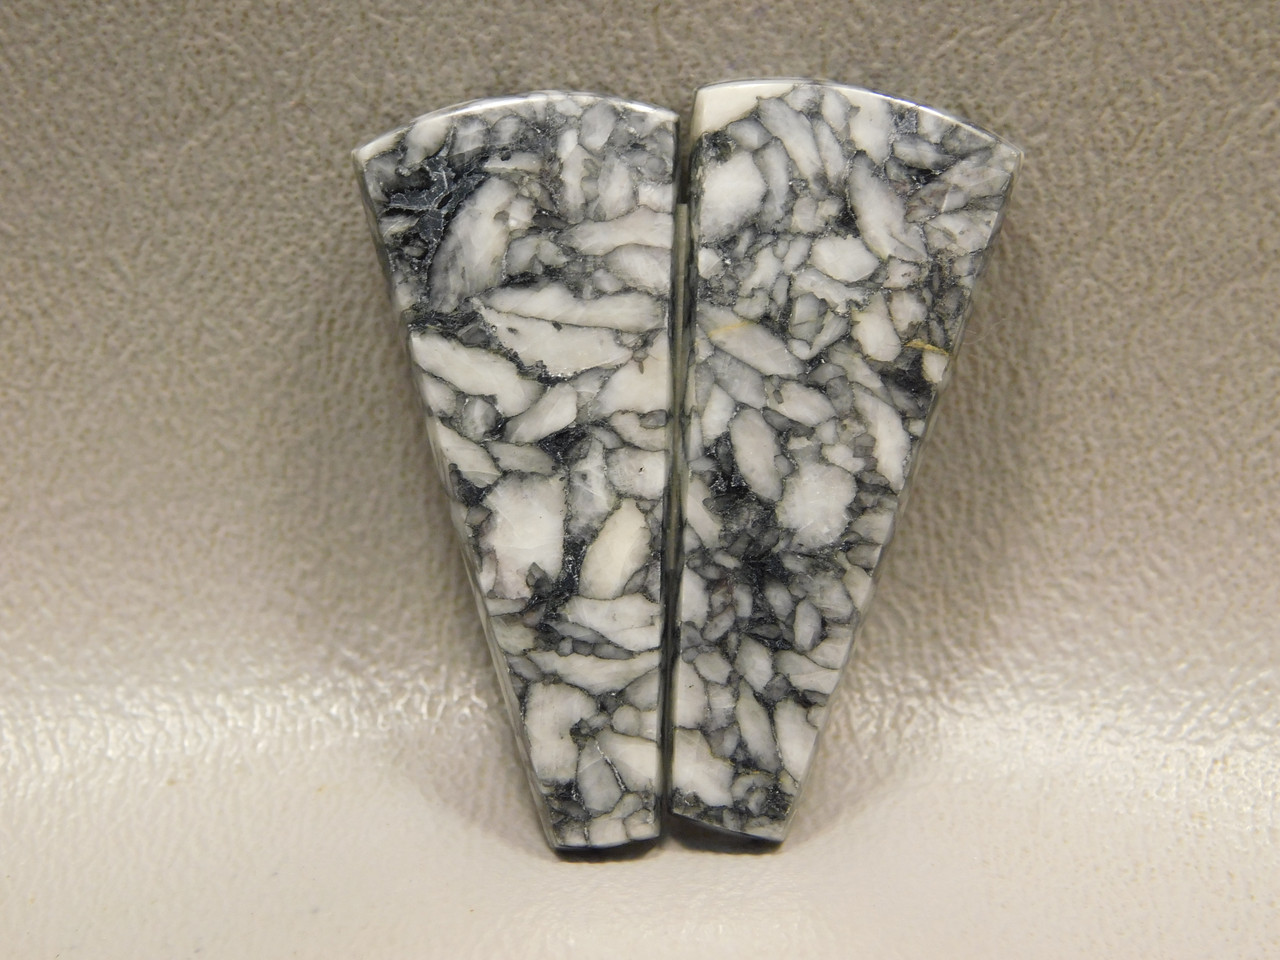 Pinolith or Pinolite Matched Pairs Stones Cabochons #11